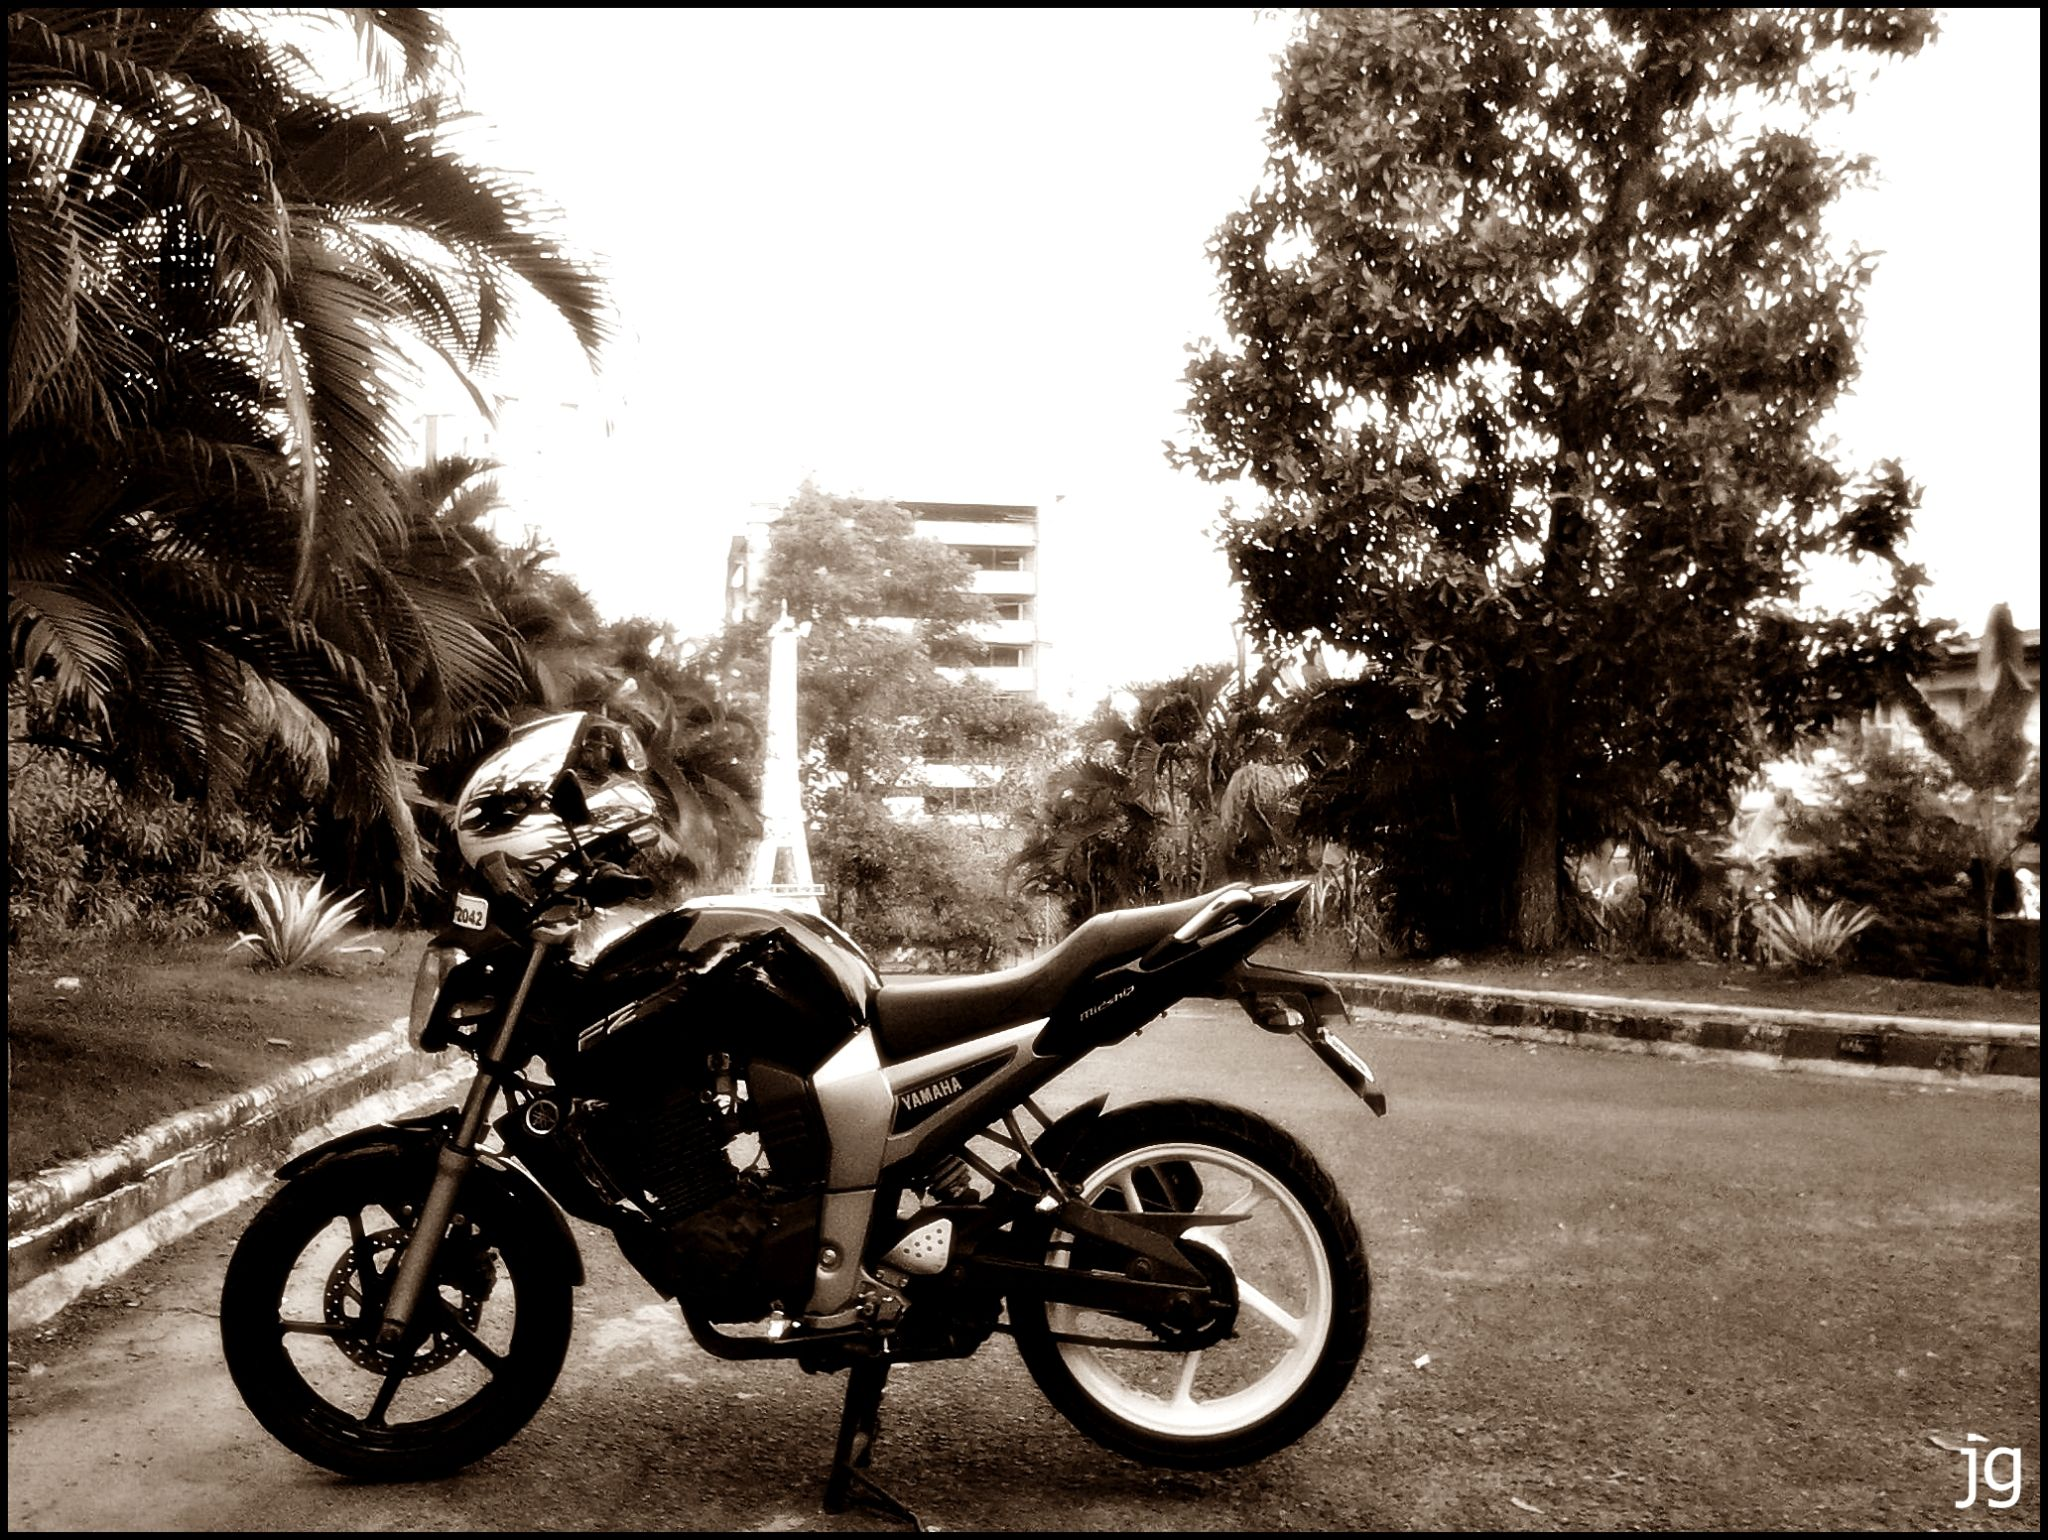 Waiting for next ride :) by Jg Mobile Photography